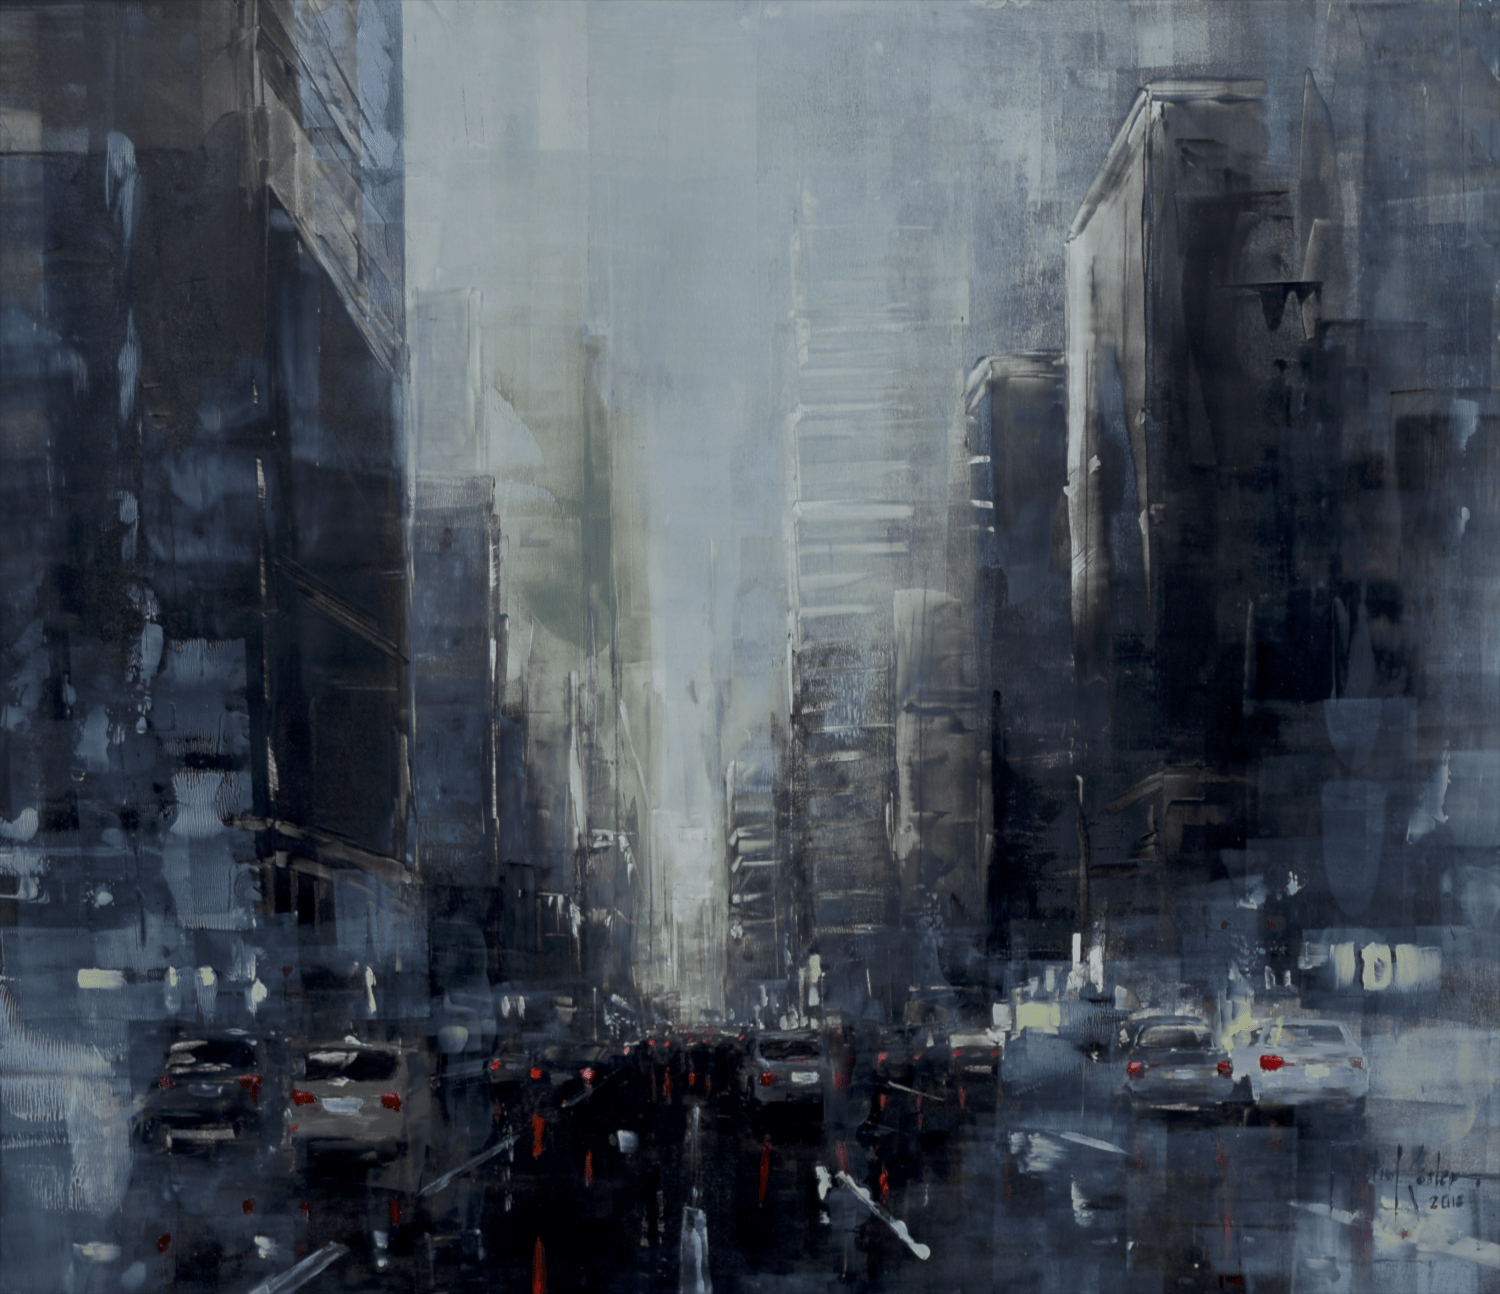 Martin Köster, New York dark afternoon VI, Oil on panel, Unikat, 2019, 90 x 80 cm